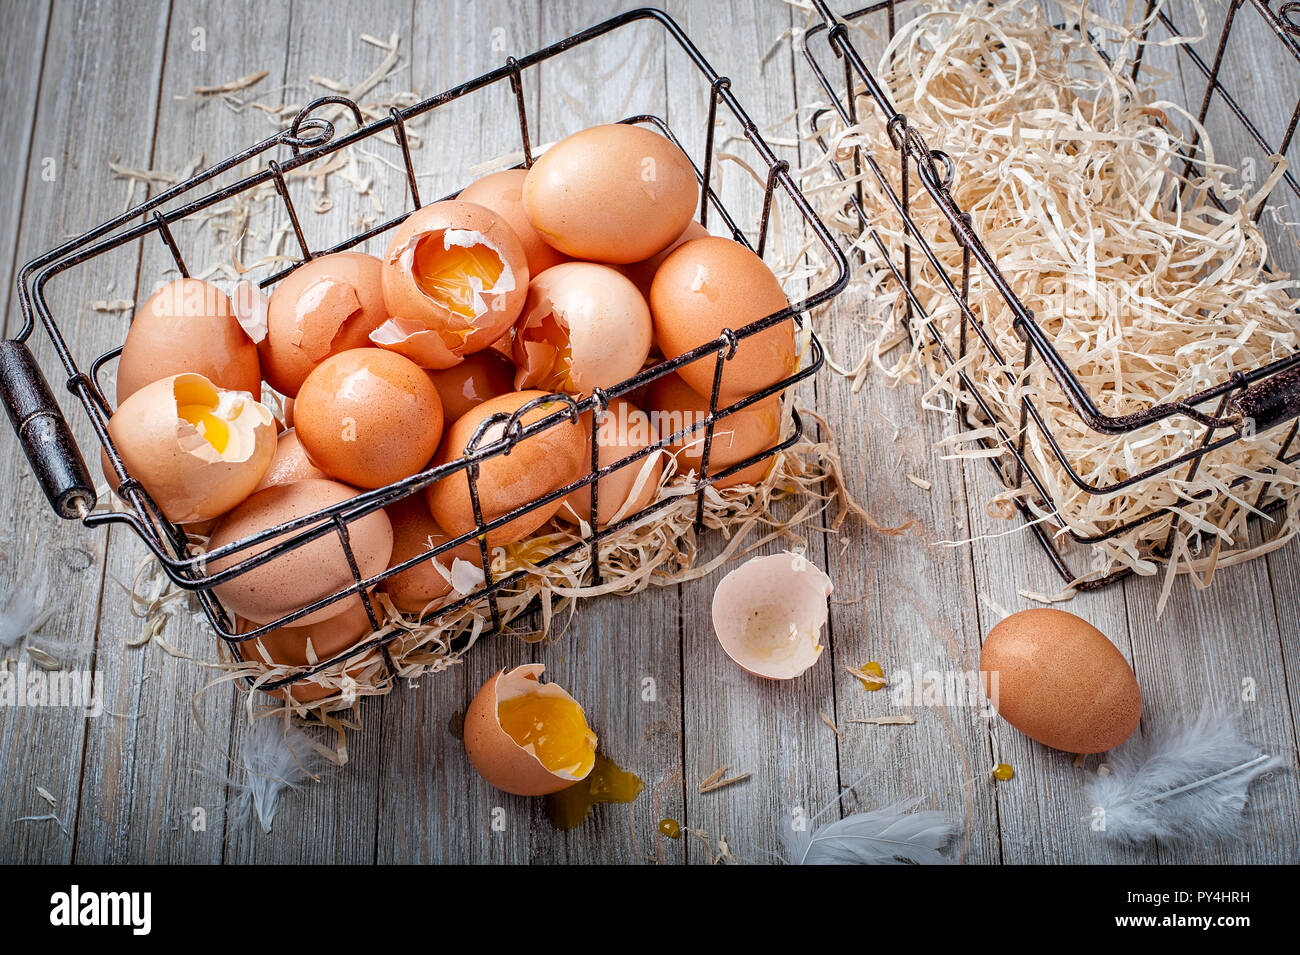 Visual metaphor/proverb: Don't put all of your eggs in one basket with cracked eggs. - Stock Image